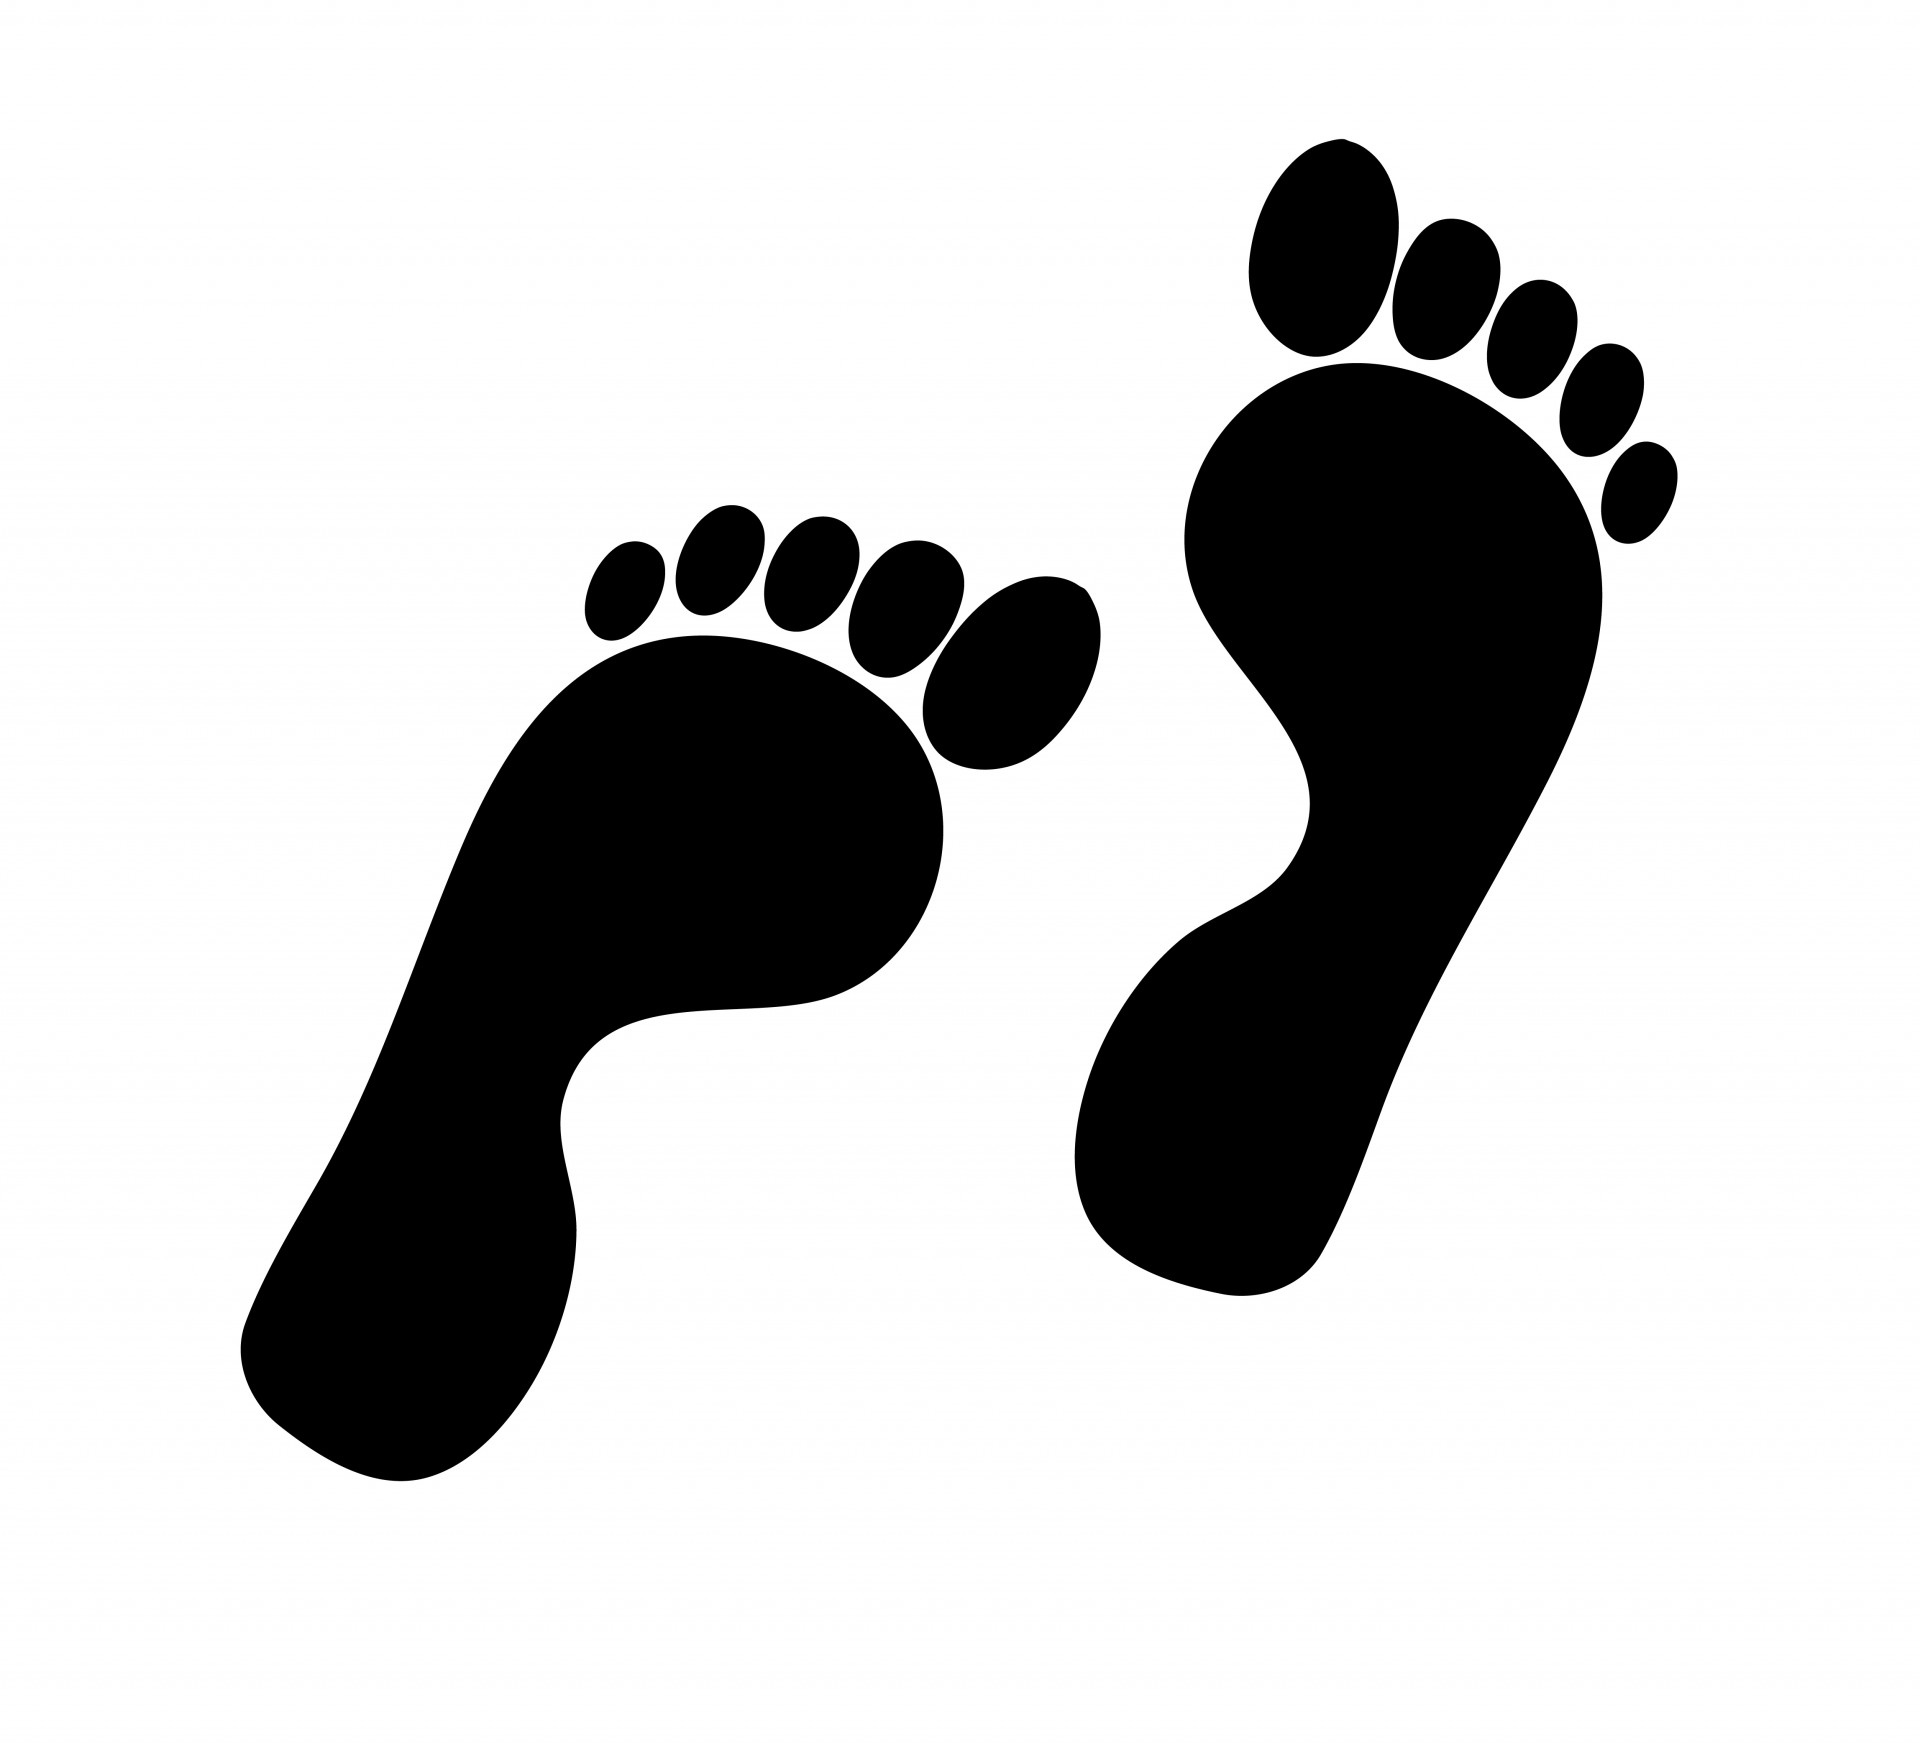 Footprints Silhouette Clipart Free Stock-Footprints Silhouette Clipart Free Stock Photo Hd Public Domain-10